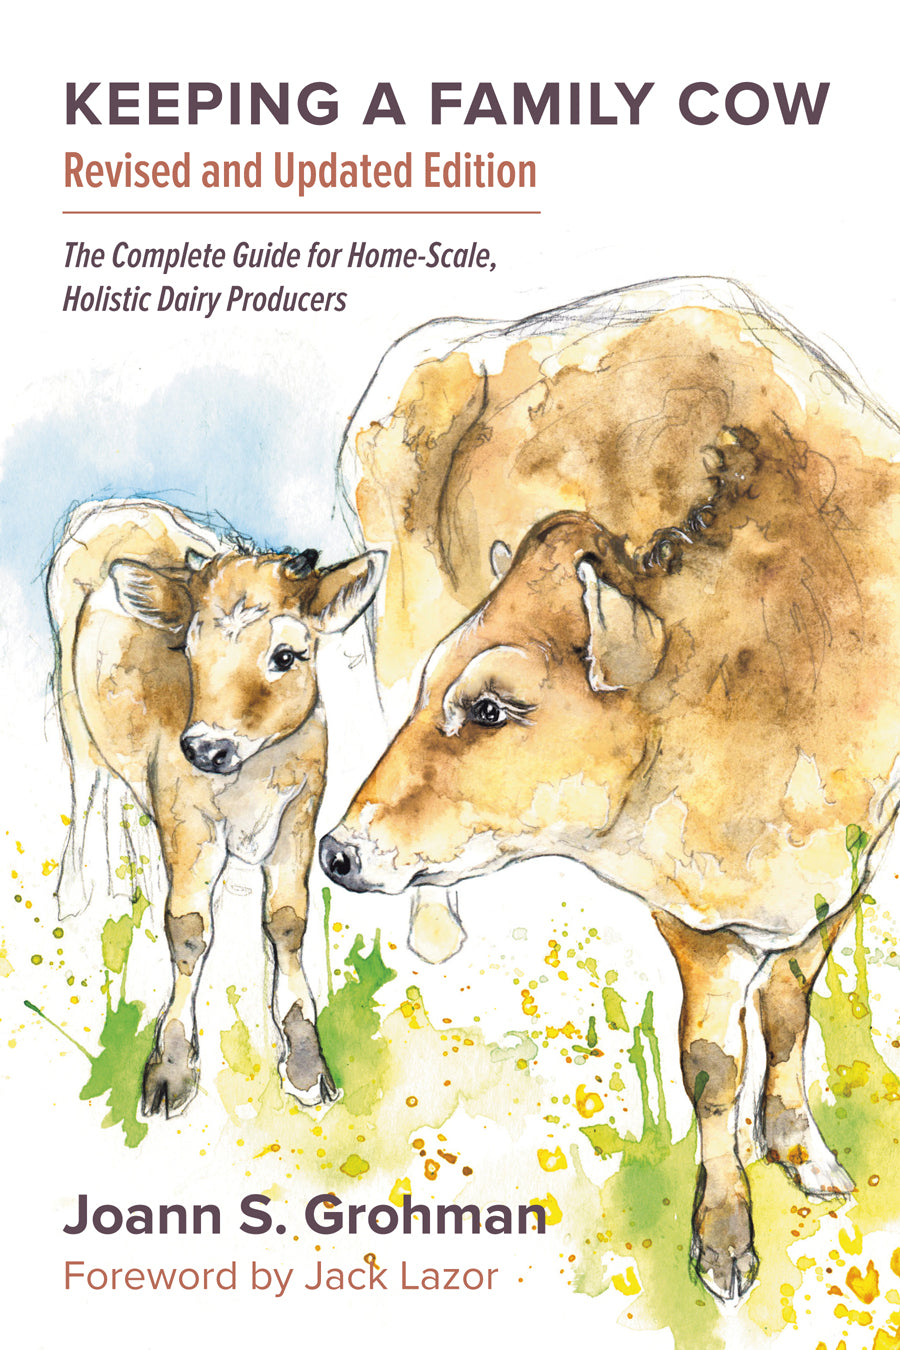 Keeping a Family Cow by Joann S. Grohman